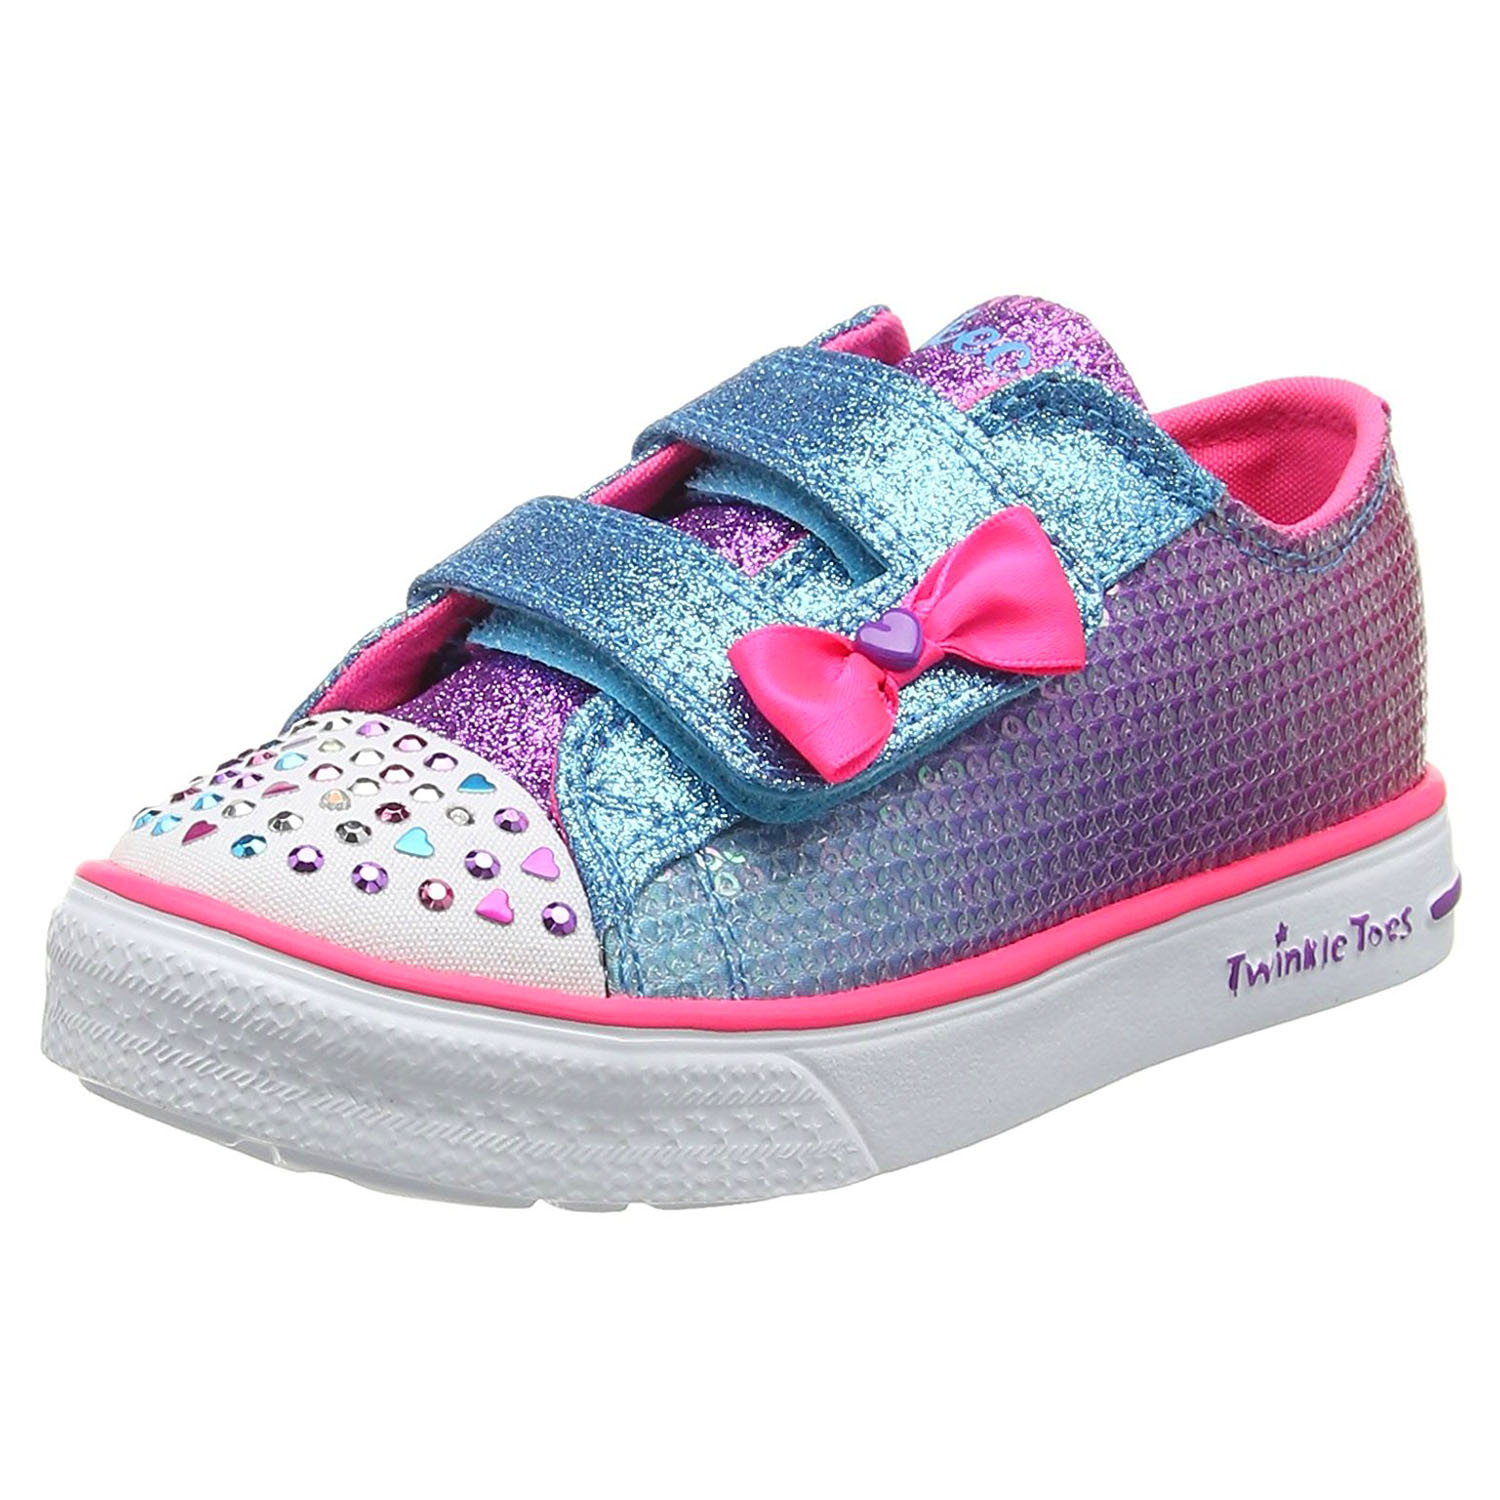 Twinkles Chaussure Multicolore Toes Cher Bébé Fille Skechers Pas 76YgbfIyv